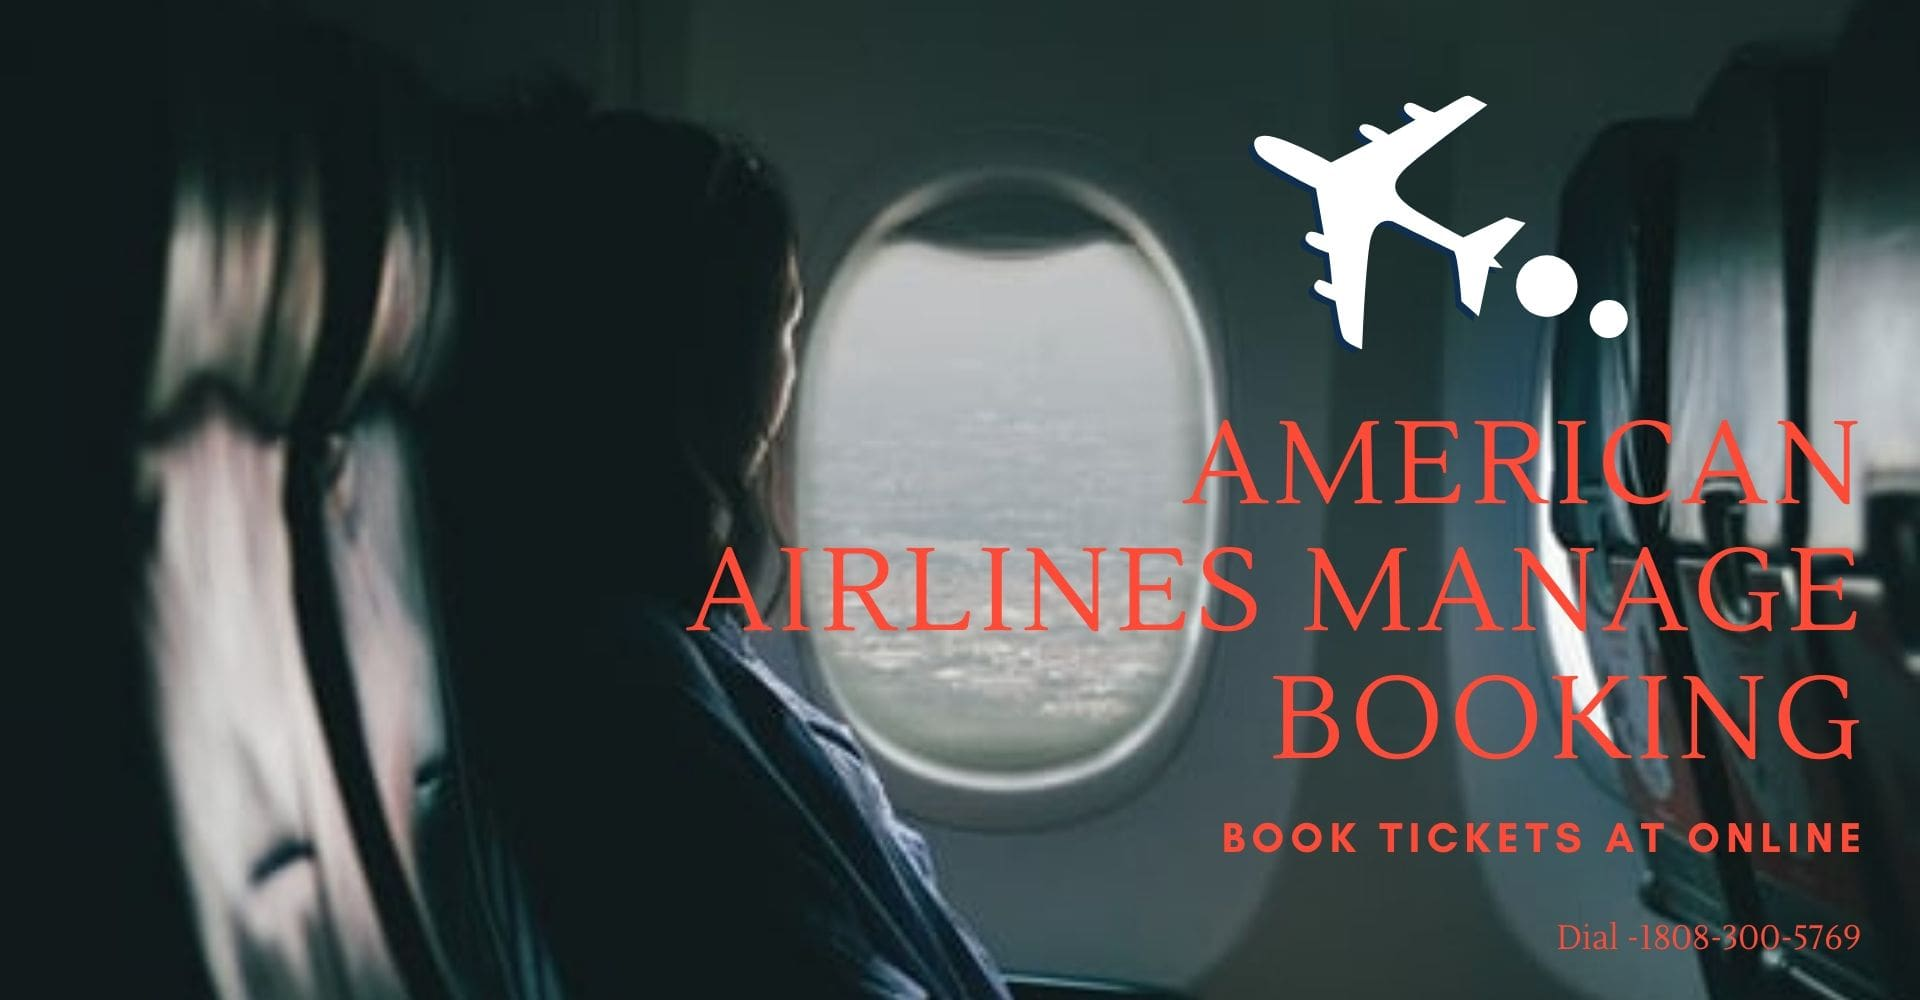 2020-03-05-03-26-44american airlines manage booking